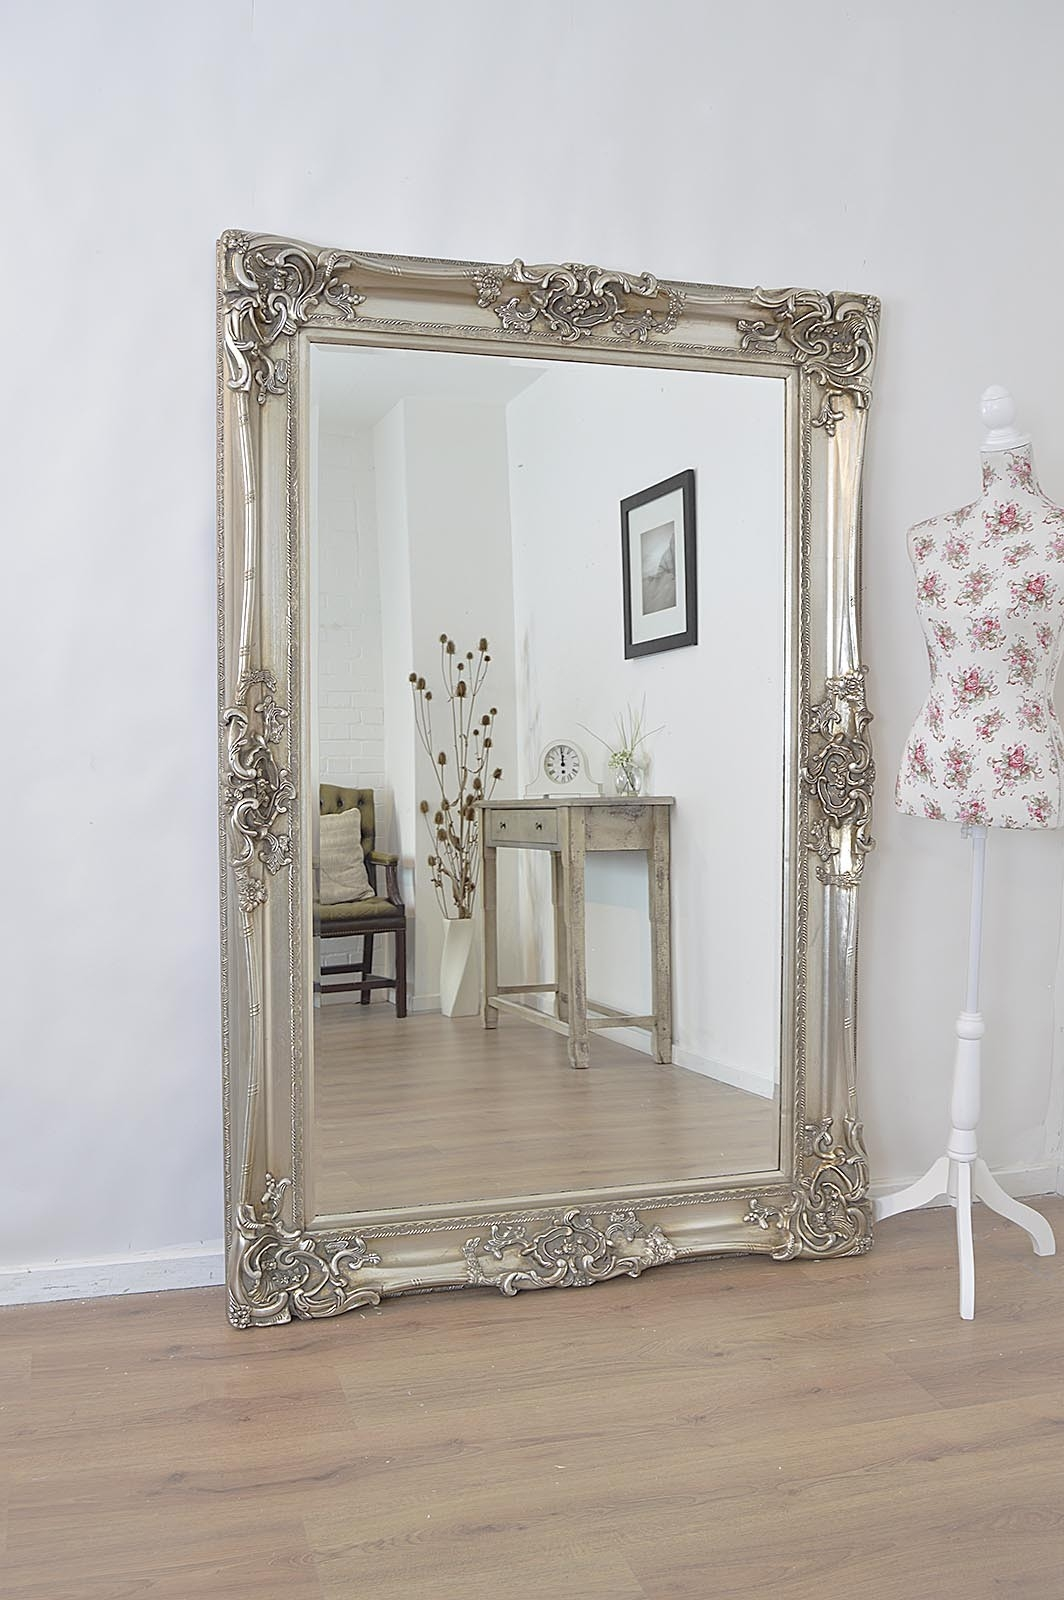 Fine Decoration Huge Wall Mirror Cozy Design Silver Ornate Huge With Regard To Large Ornate Silver Mirror (Image 5 of 15)